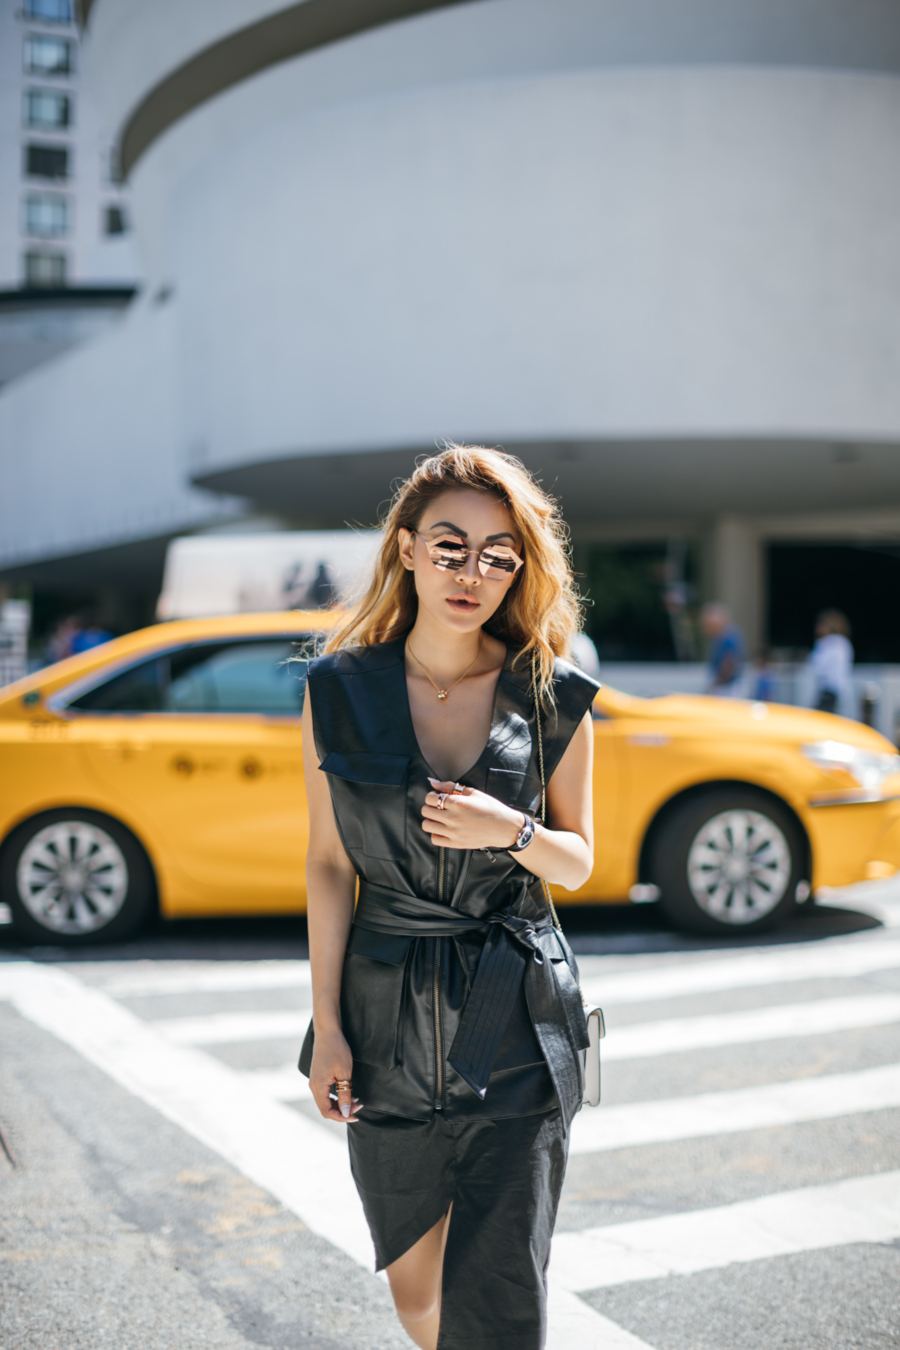 Fashion blogger Notjessfashion shows you how to dress like a fashion icon wearing a leather dress // Notjessfashion.com